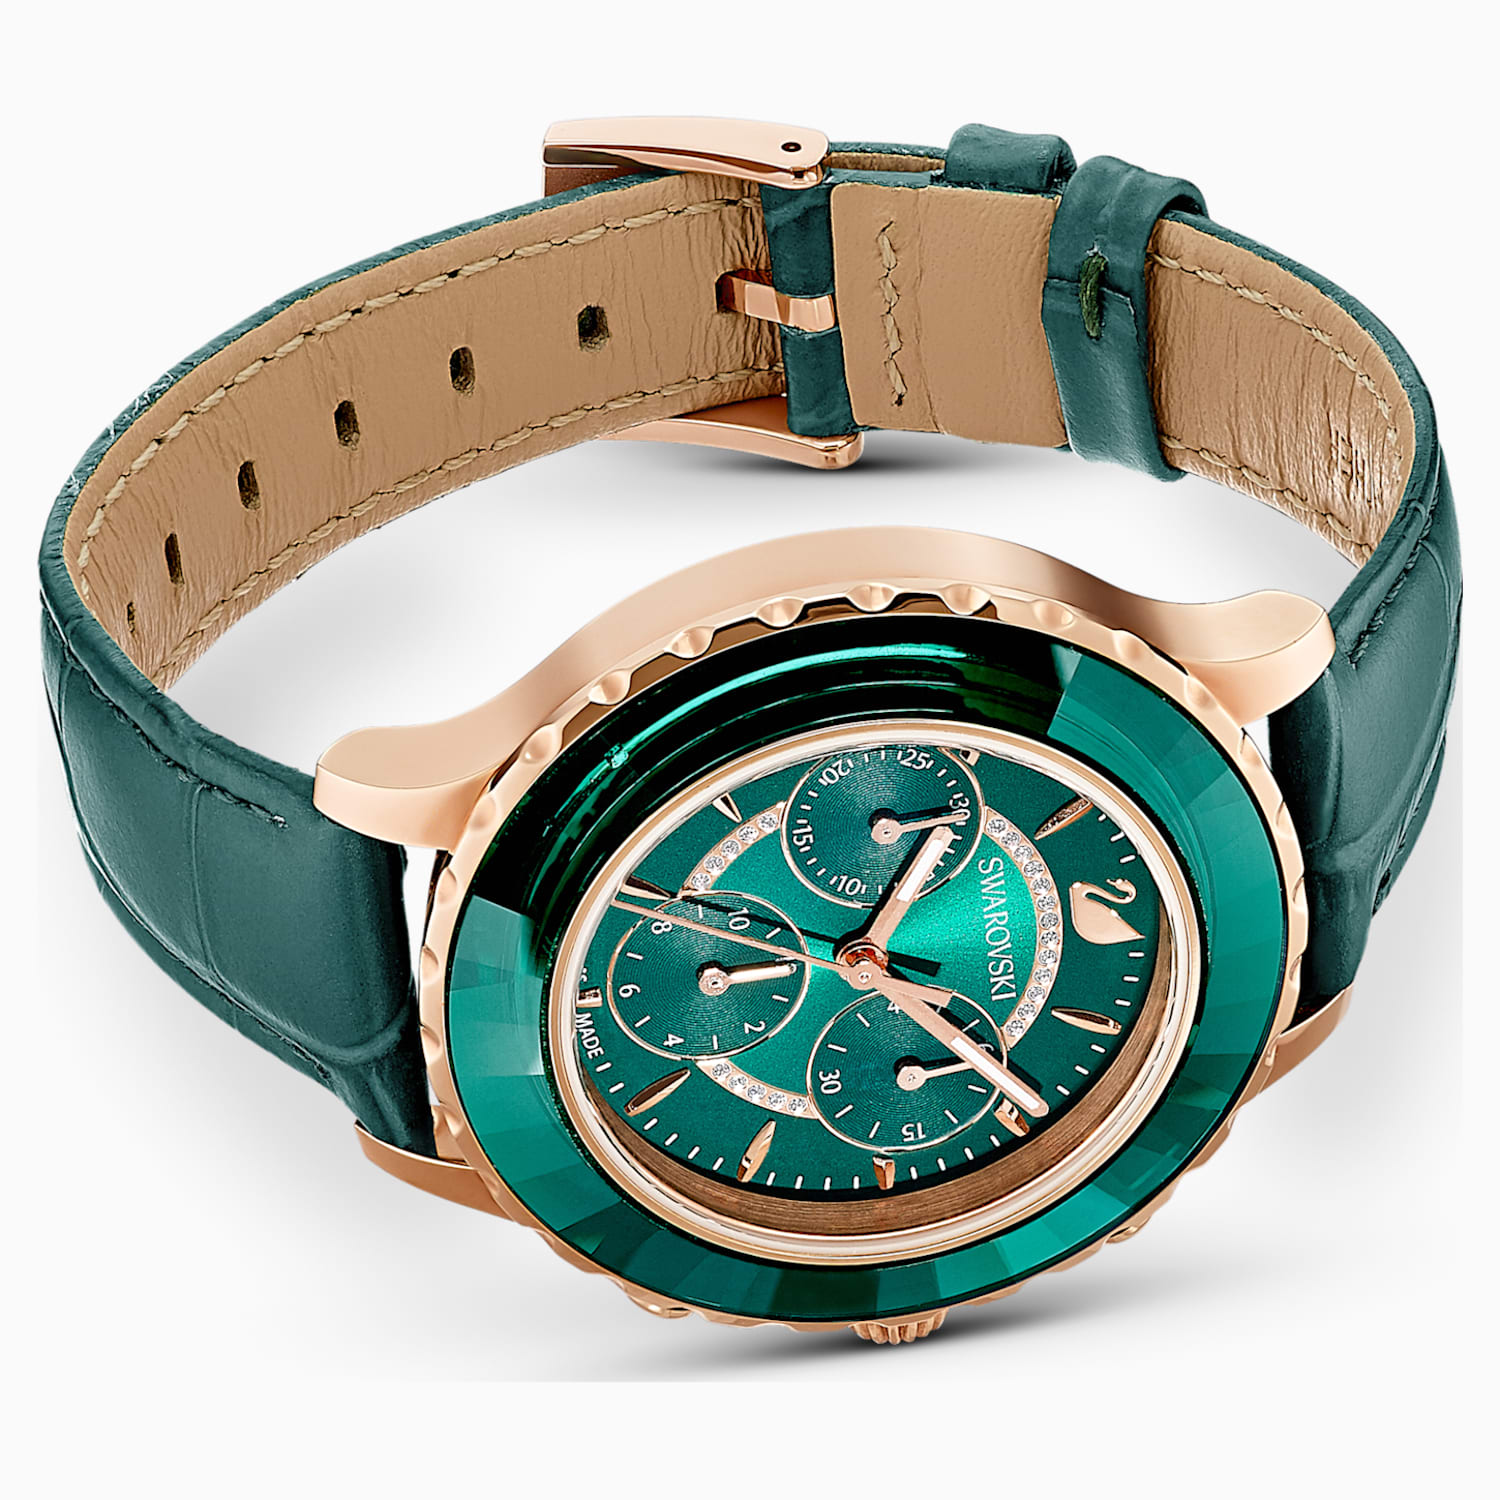 Octea Lux Chrono Watch Leather Strap Green Rose Gold Tone Pvd Swarovski Com